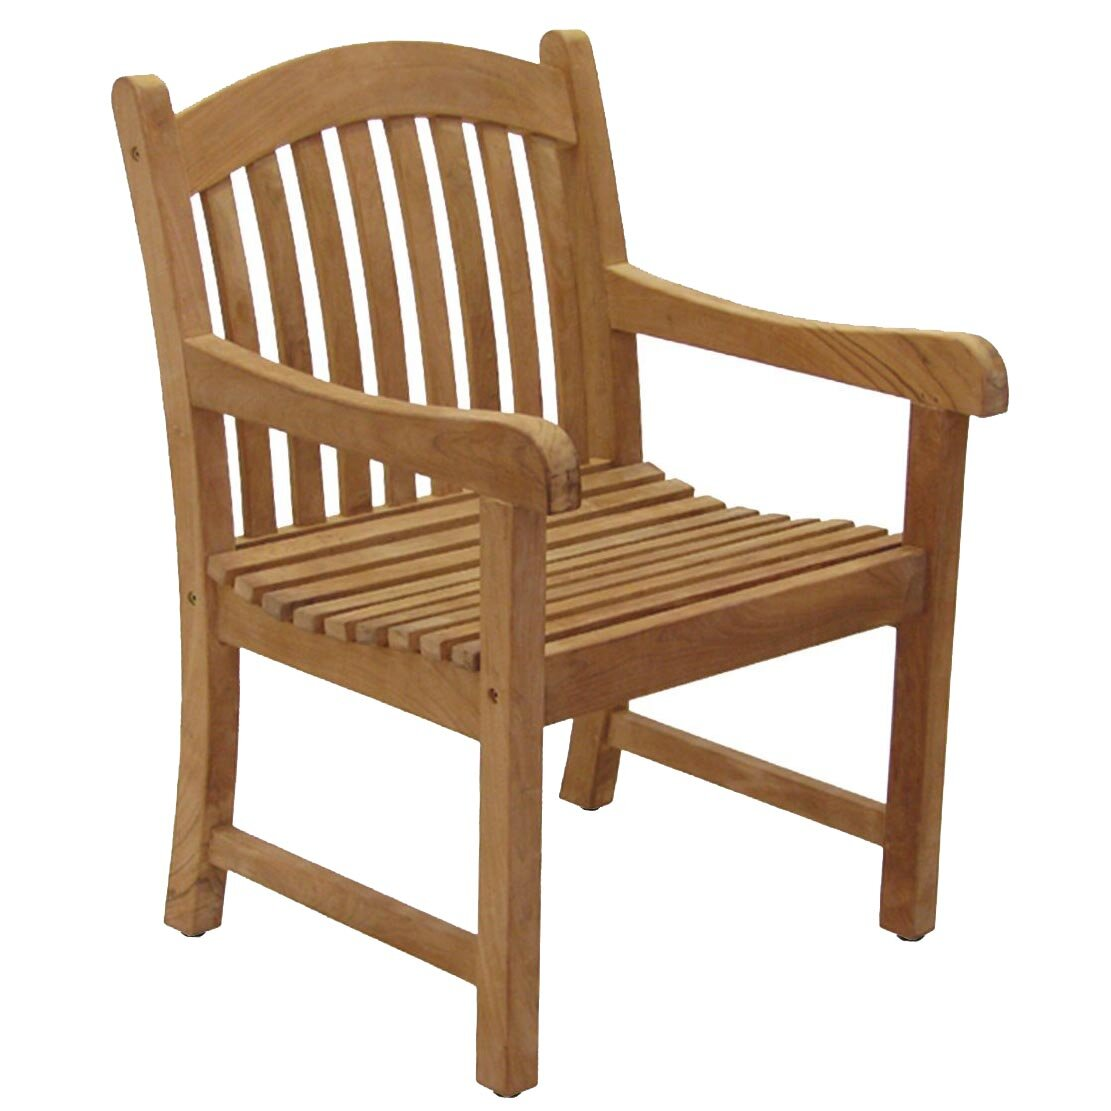 International Home Miami Amazionia Teak Darwin Stacking  : Darwin2BStacking2BDining2BArm2BChairs2B2528Set2Bof2B22529 from www.wayfair.com size 1111 x 1111 jpeg 127kB